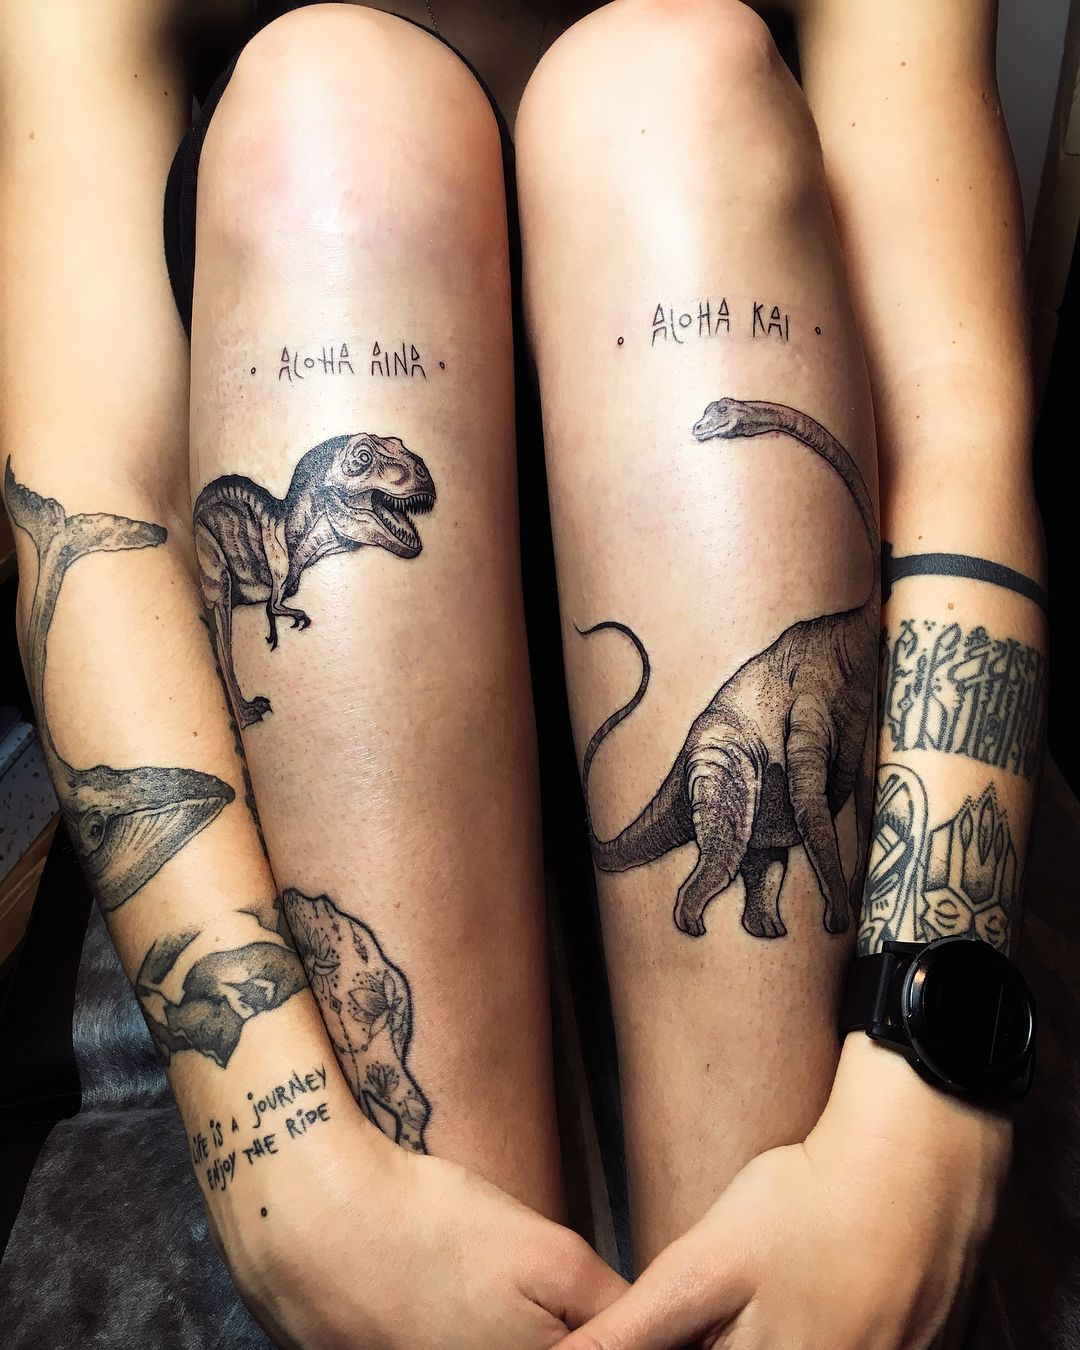 Pin Od Aletheia Na Tatuaze Tattoos Trendy Tattoos I